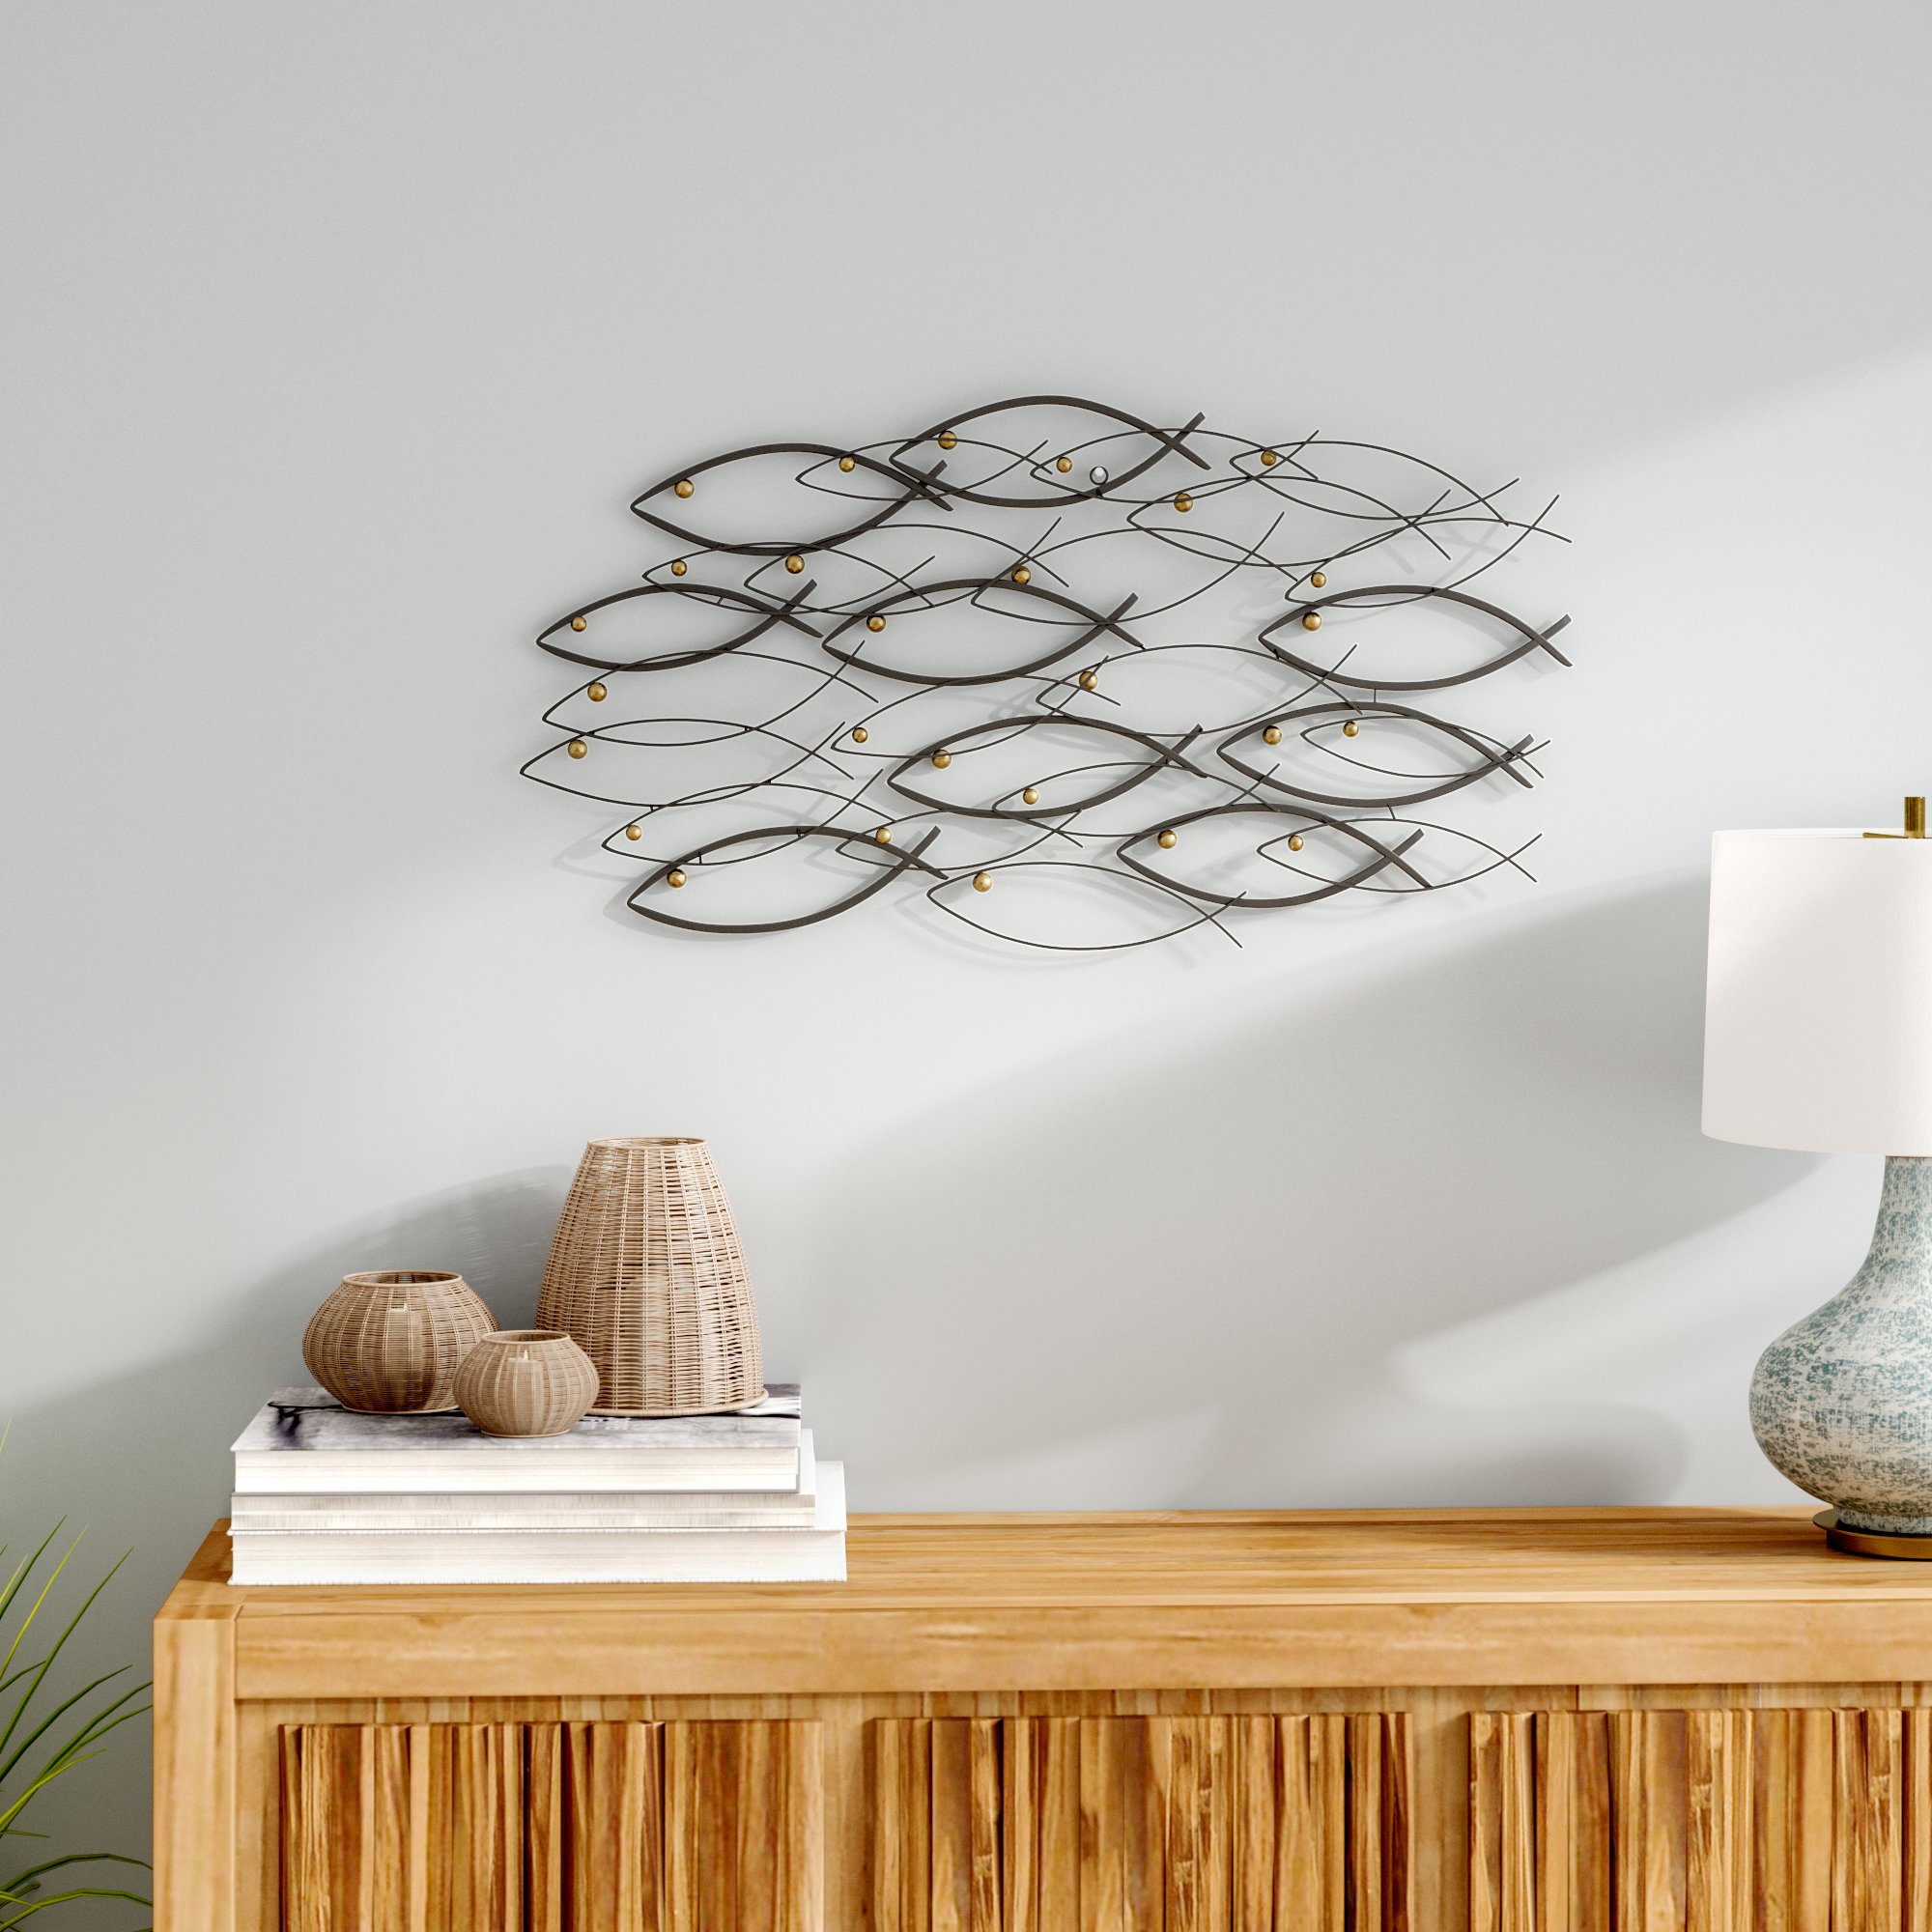 Wayfair With Regard To Most Recently Released Rhys Turtle Decor Wall Decor (View 19 of 20)